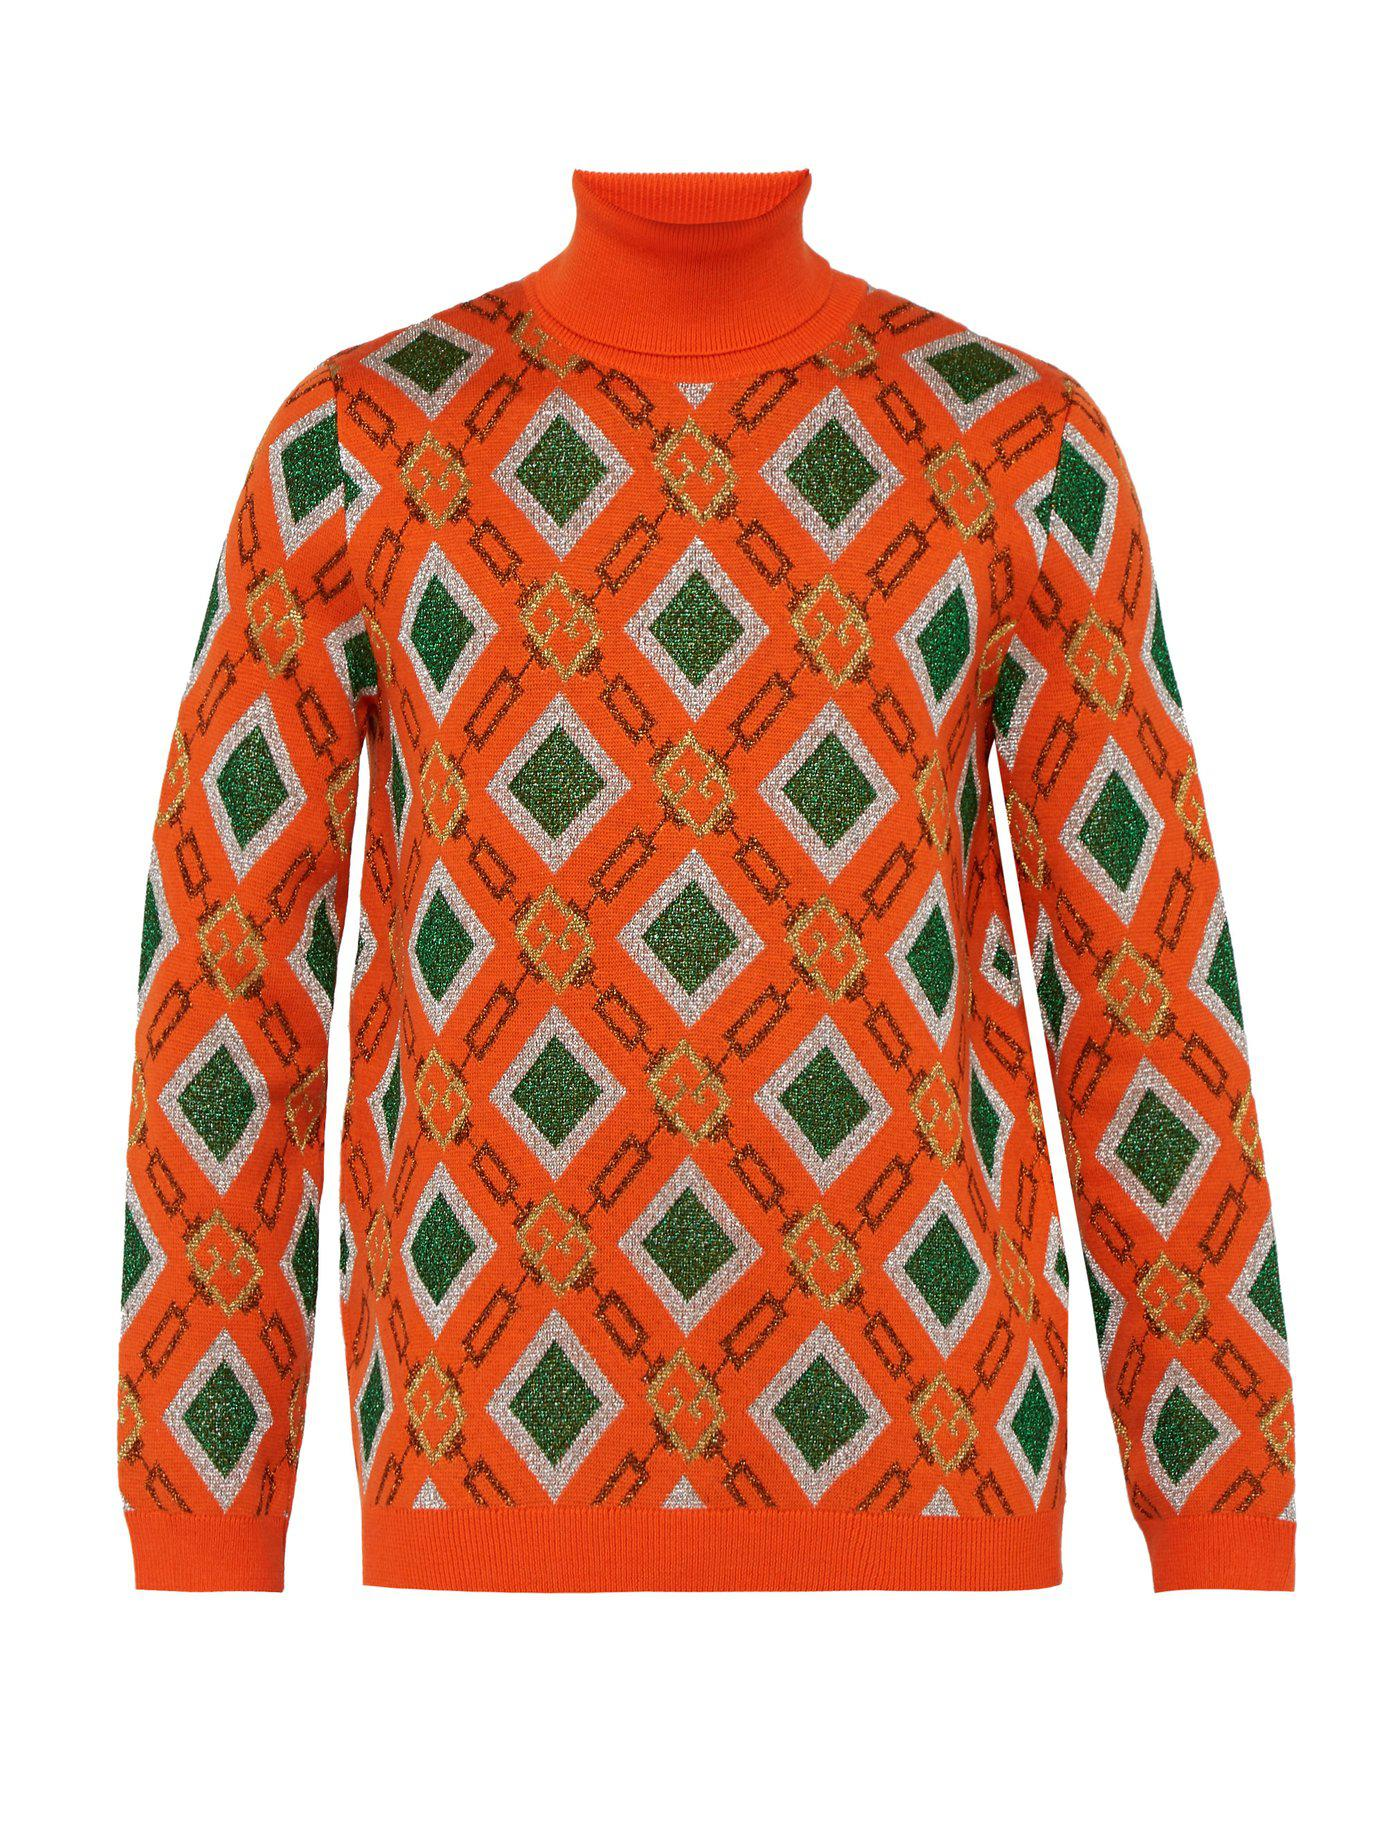 4facb735cae2 Lyst - Gucci Metallic Logo Jacquard Wool Blend Sweater in Orange for Men